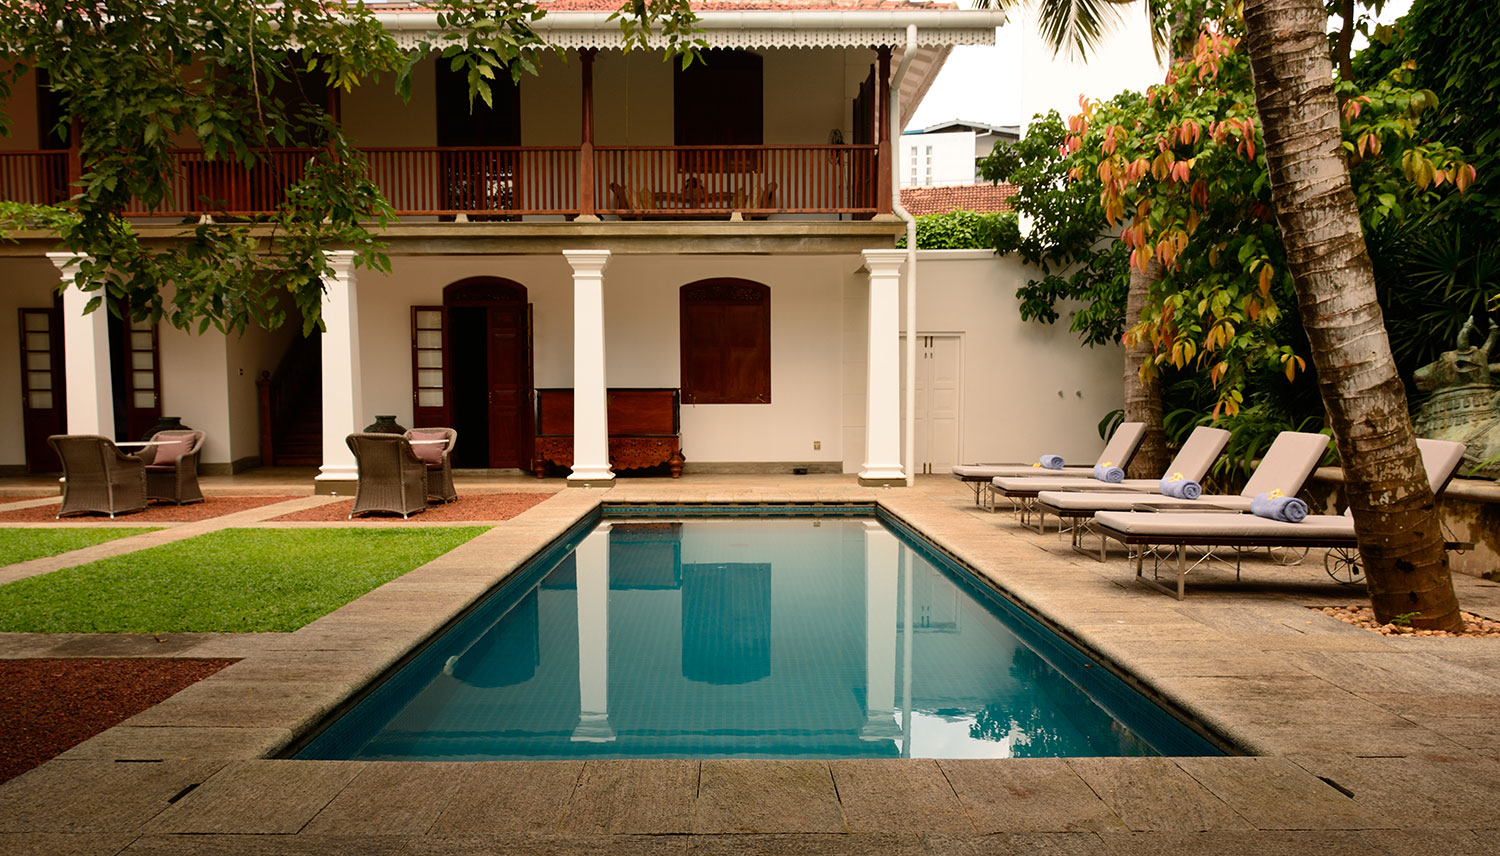 Tea and Tourism: Sri Lanka's Boutique Hotels Make an Old World New